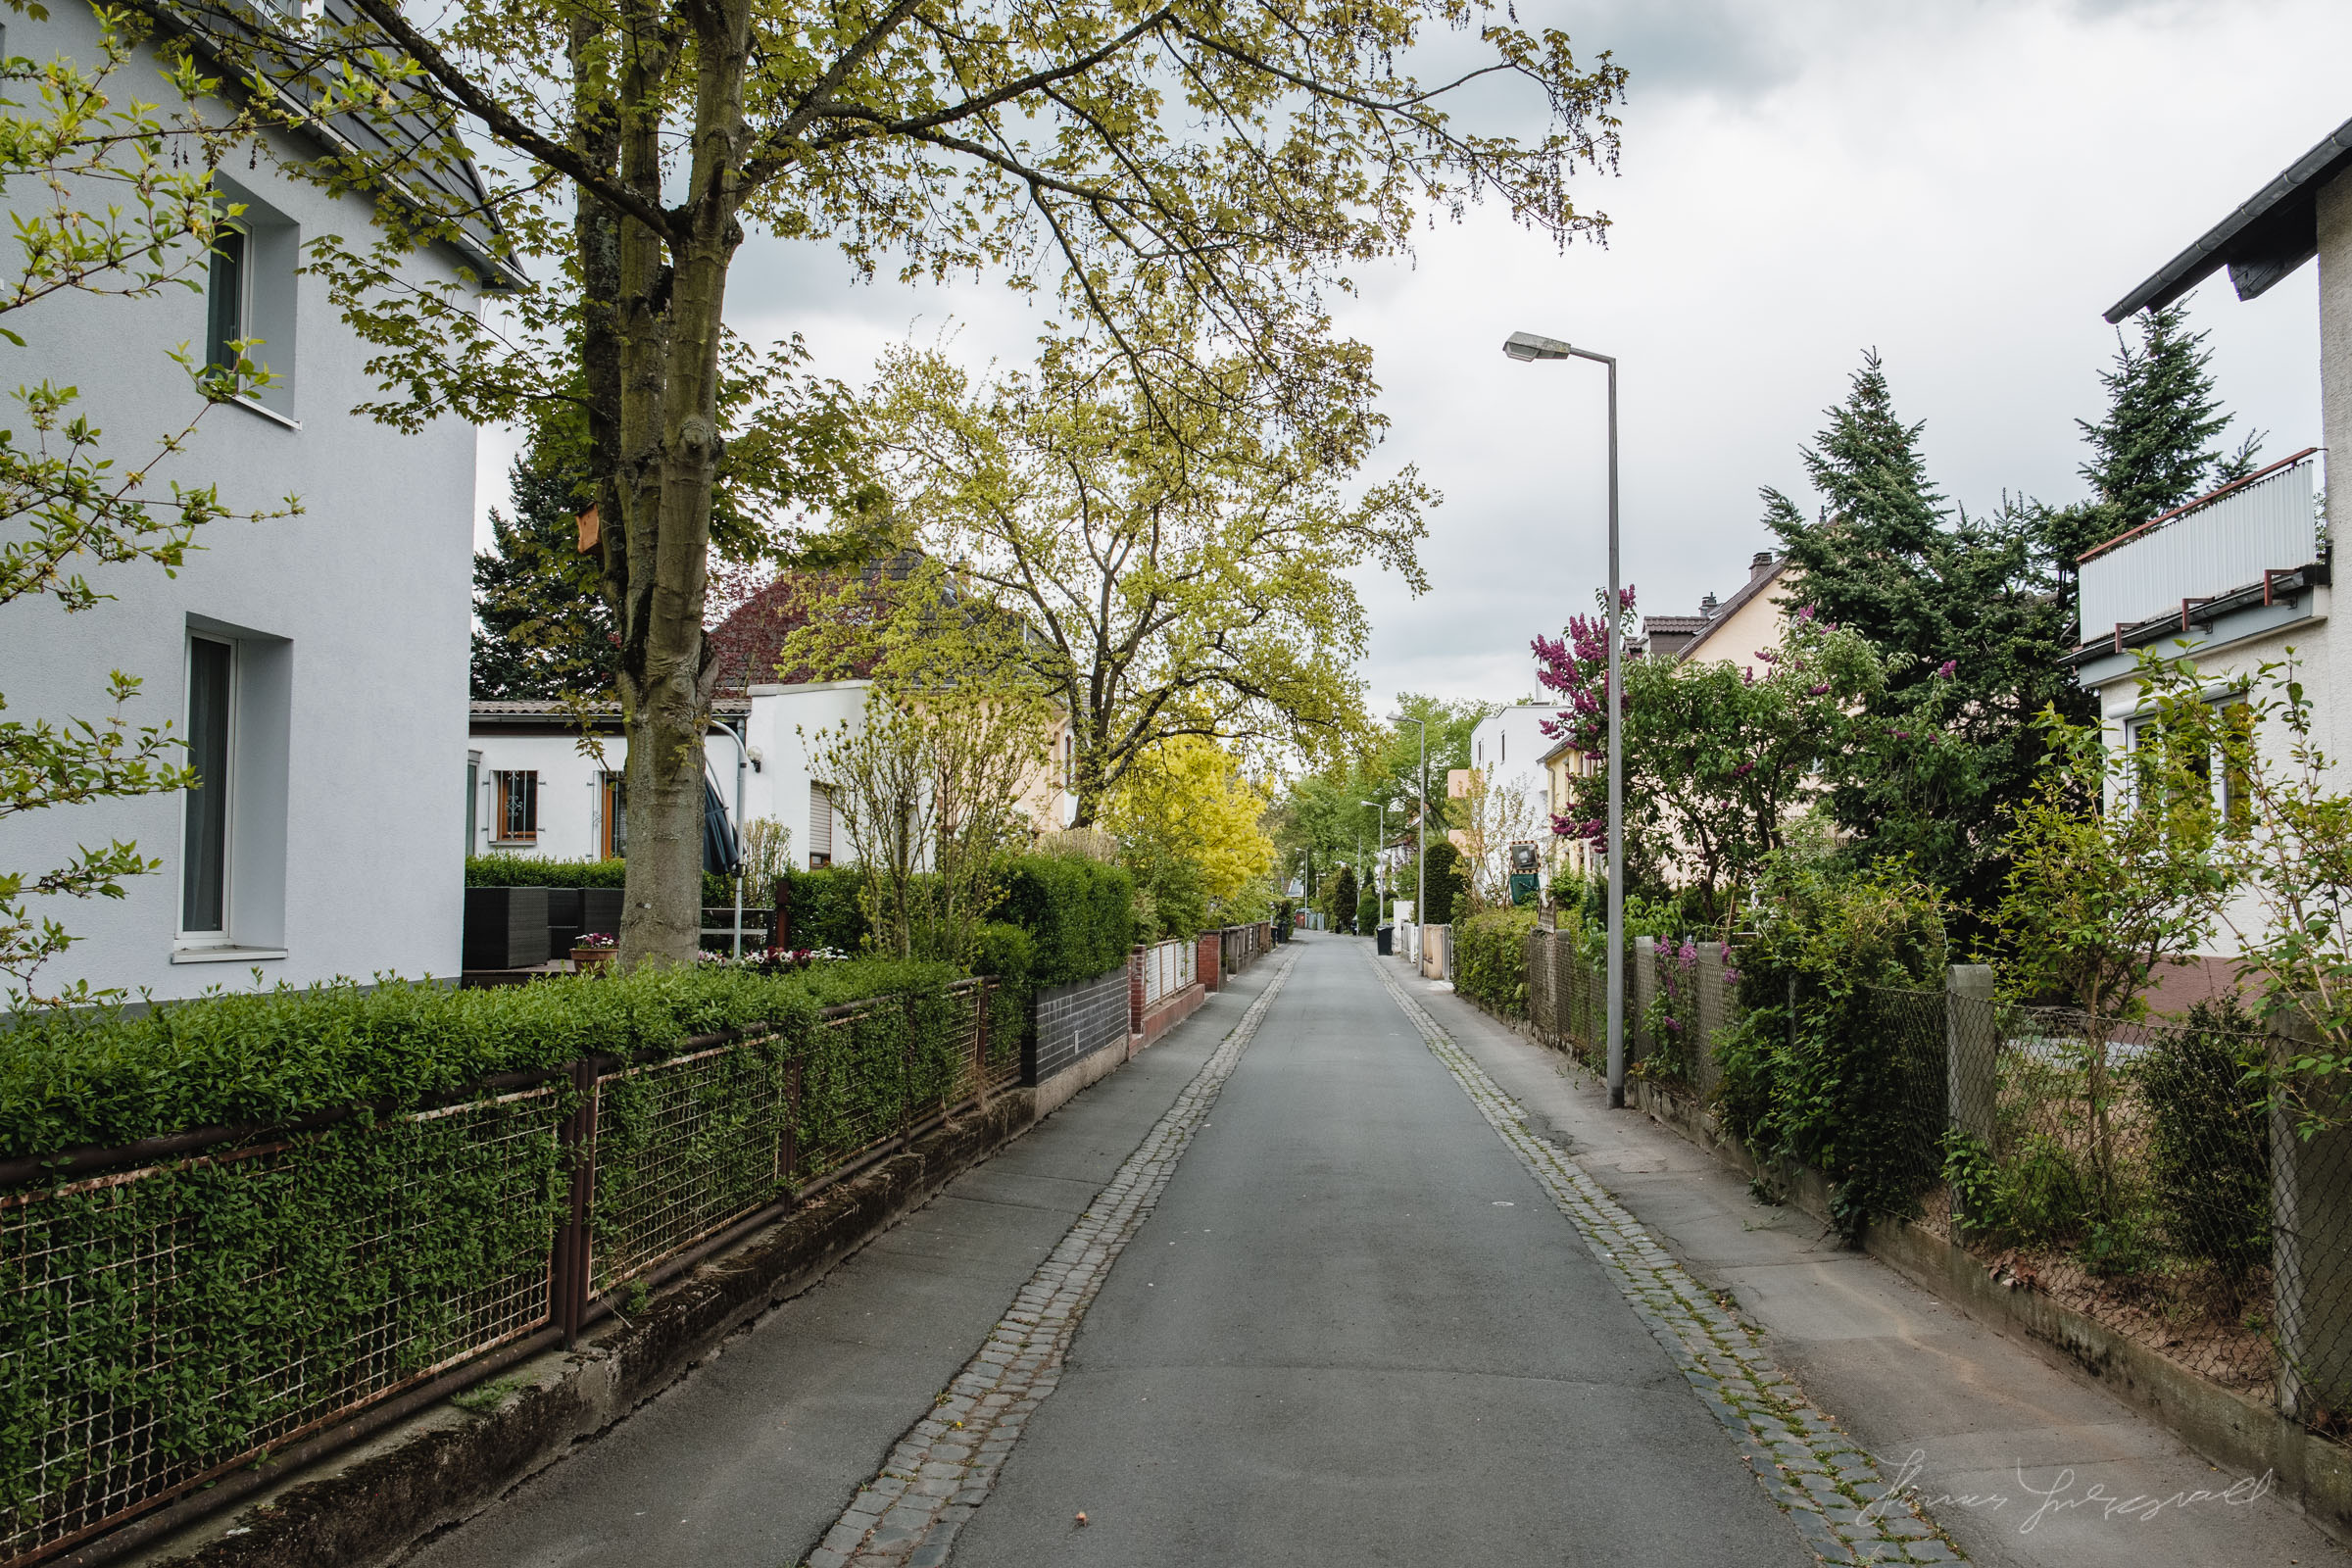 Leafy Suburbs of Darmstadt